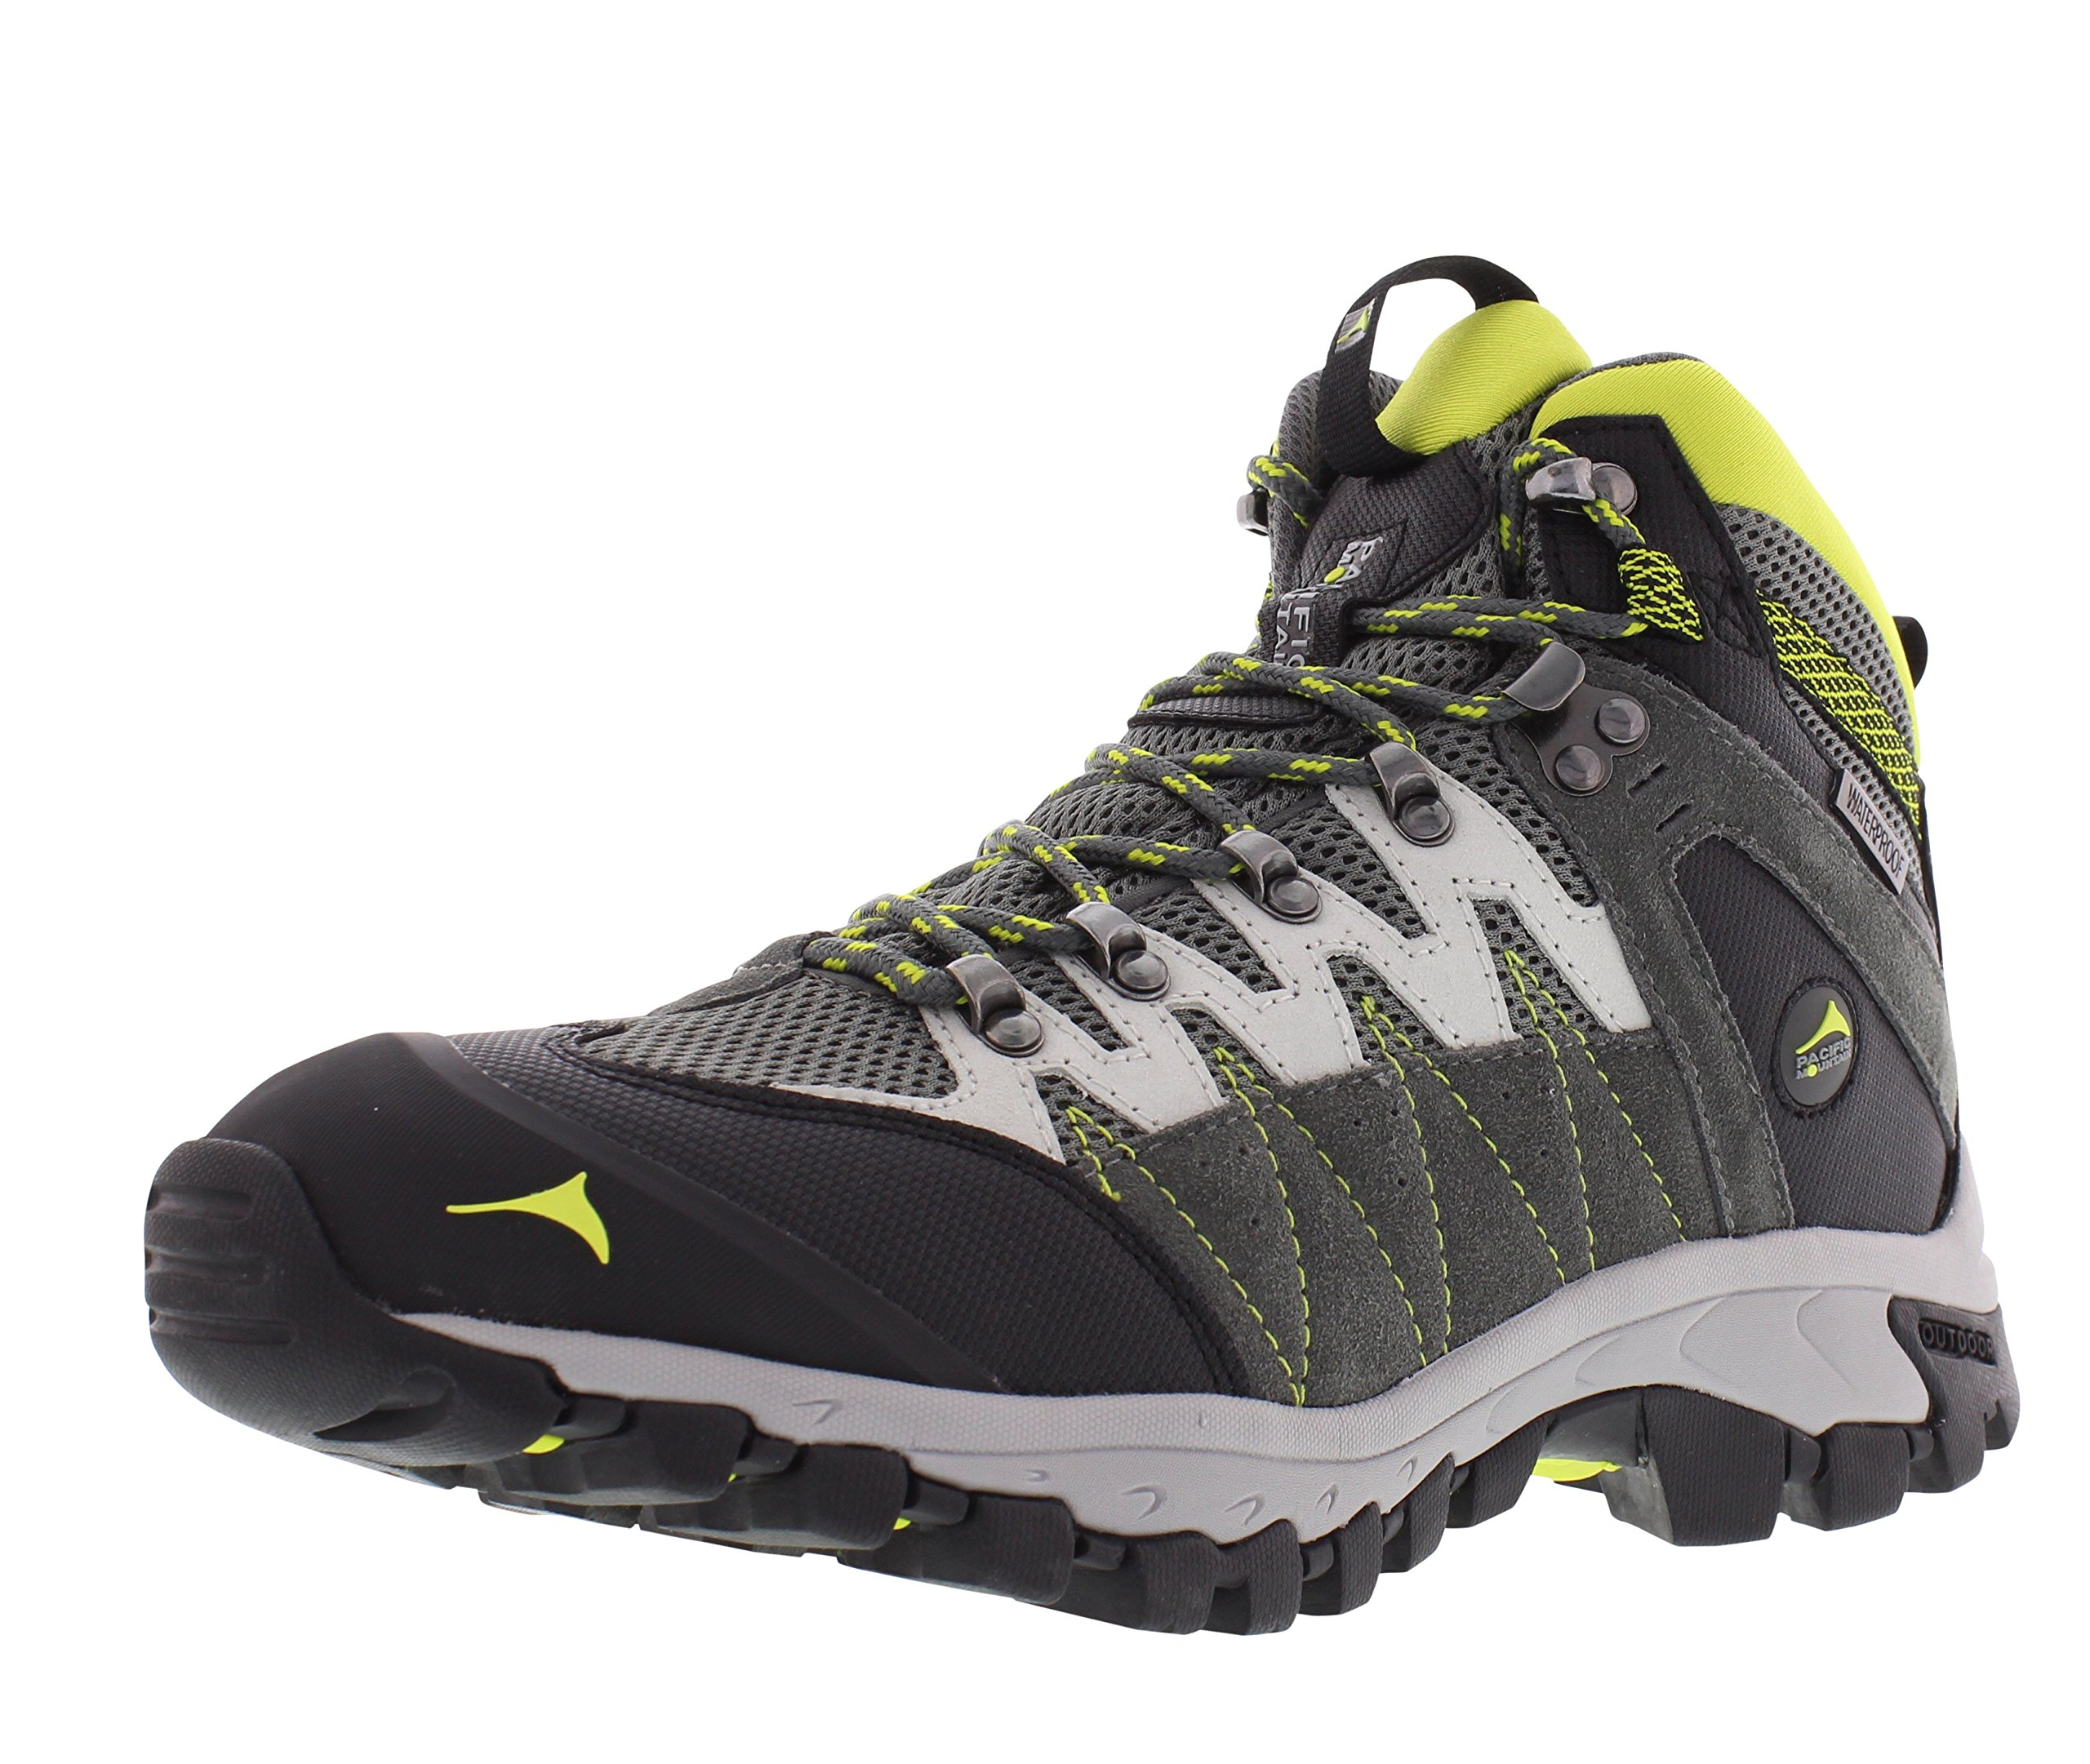 Pacific Mountain Descend Men's Waterproof Hiking Backpacking Mid-Cut Grey/Black/Light Green Boots Size 10